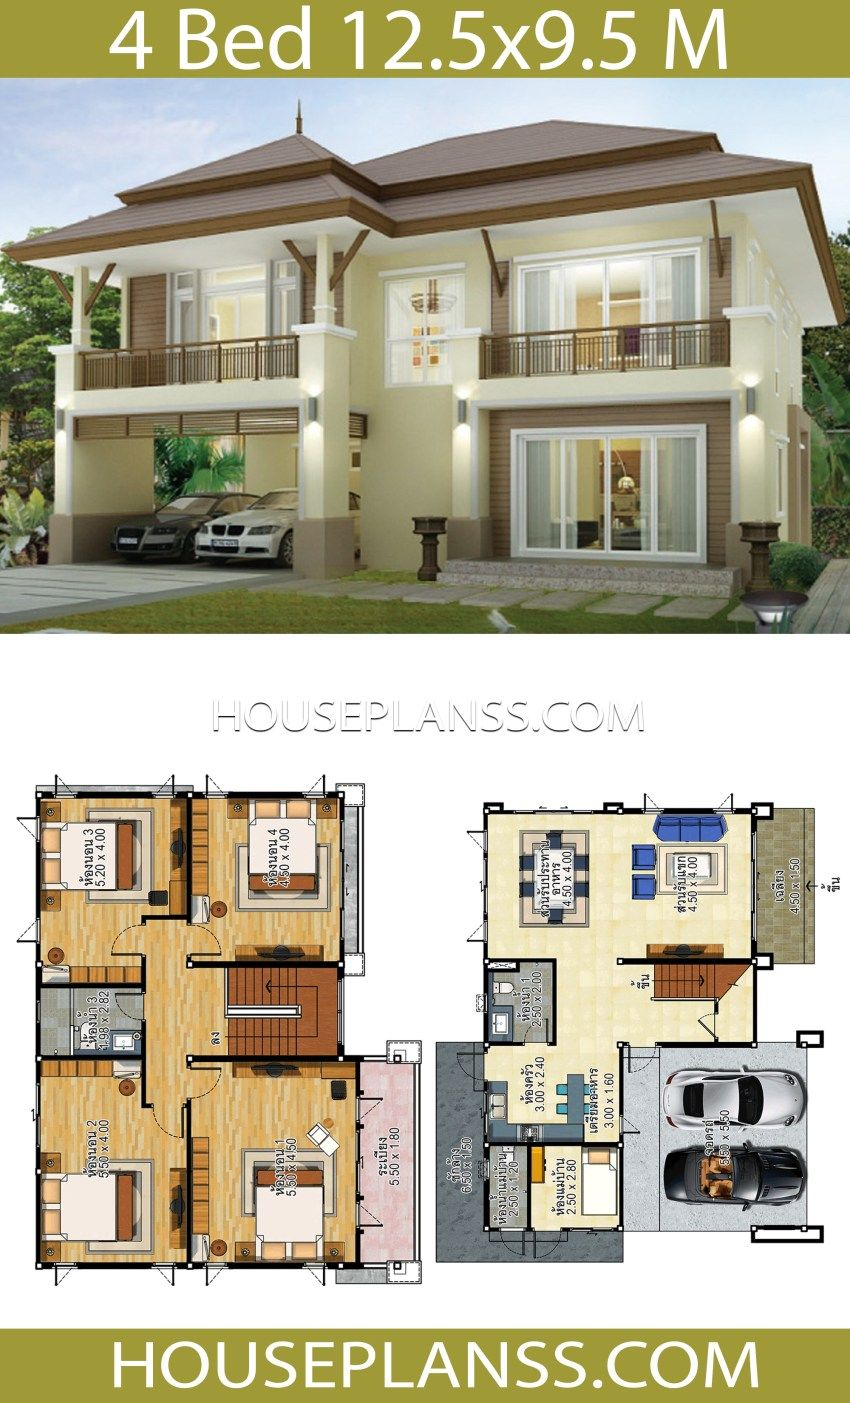 House design idea 12.5x9.5 with 4 bedrooms - House Plans ...